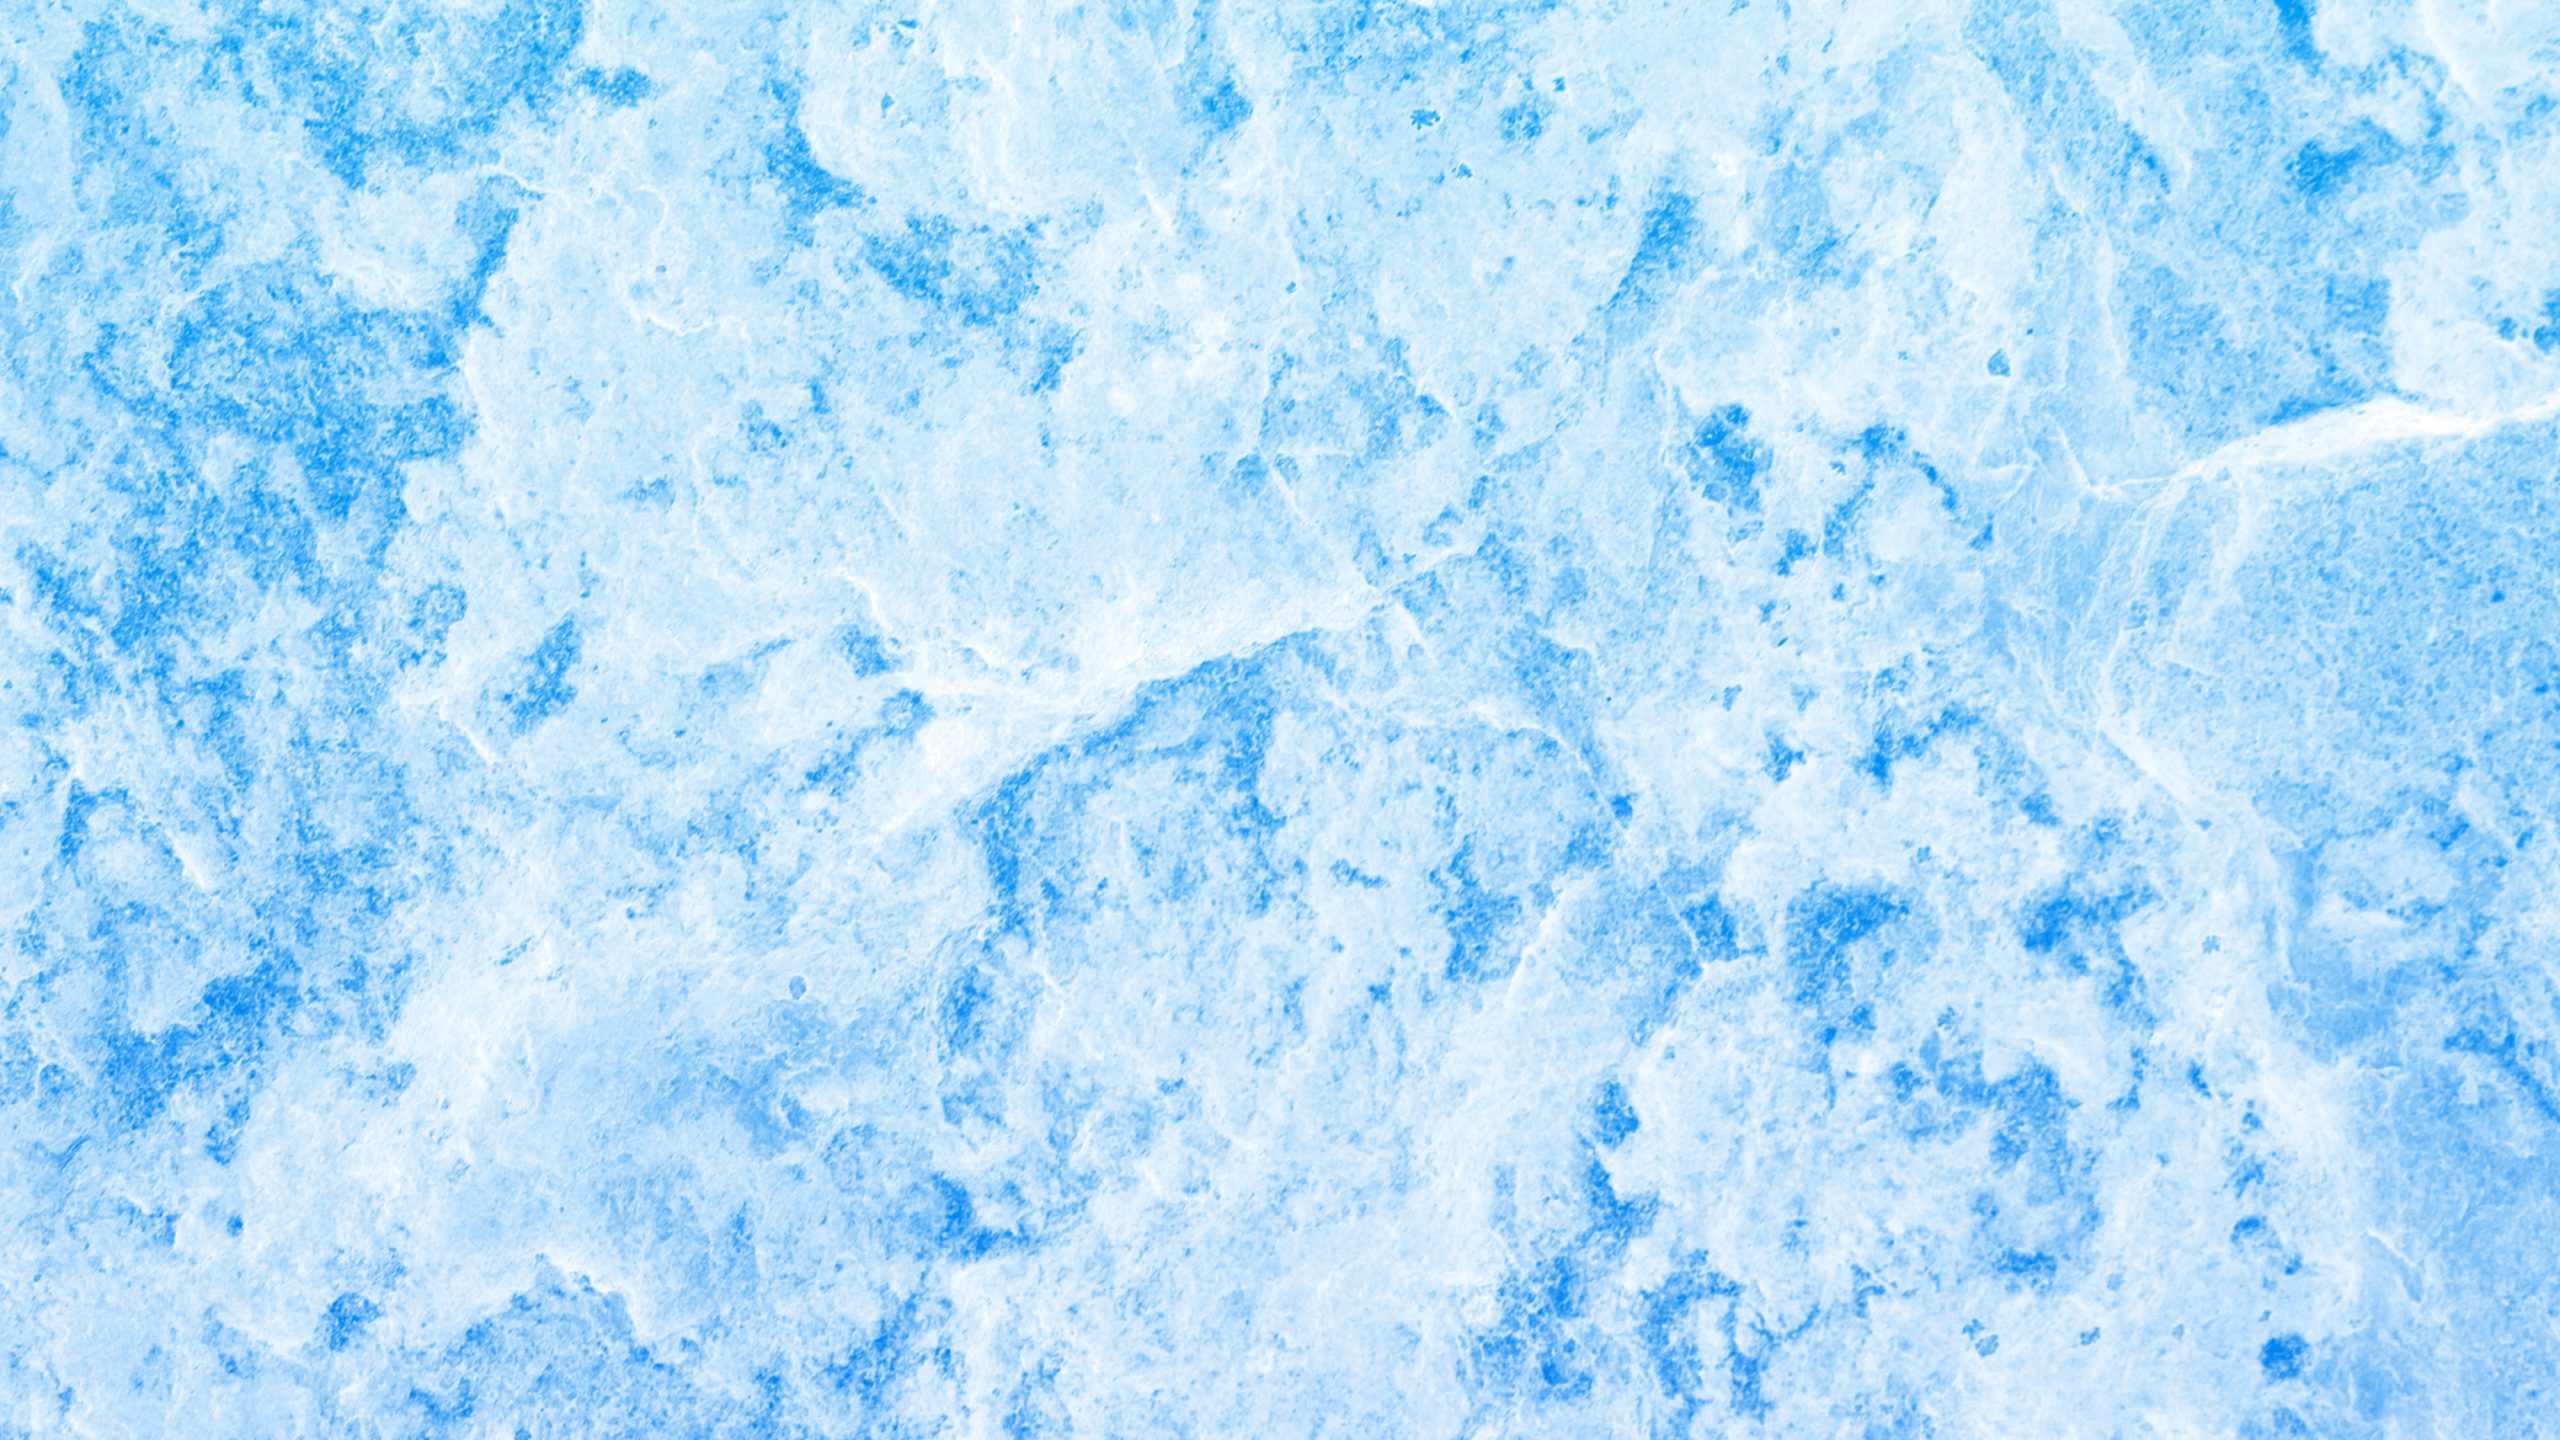 Blue and white marble surface